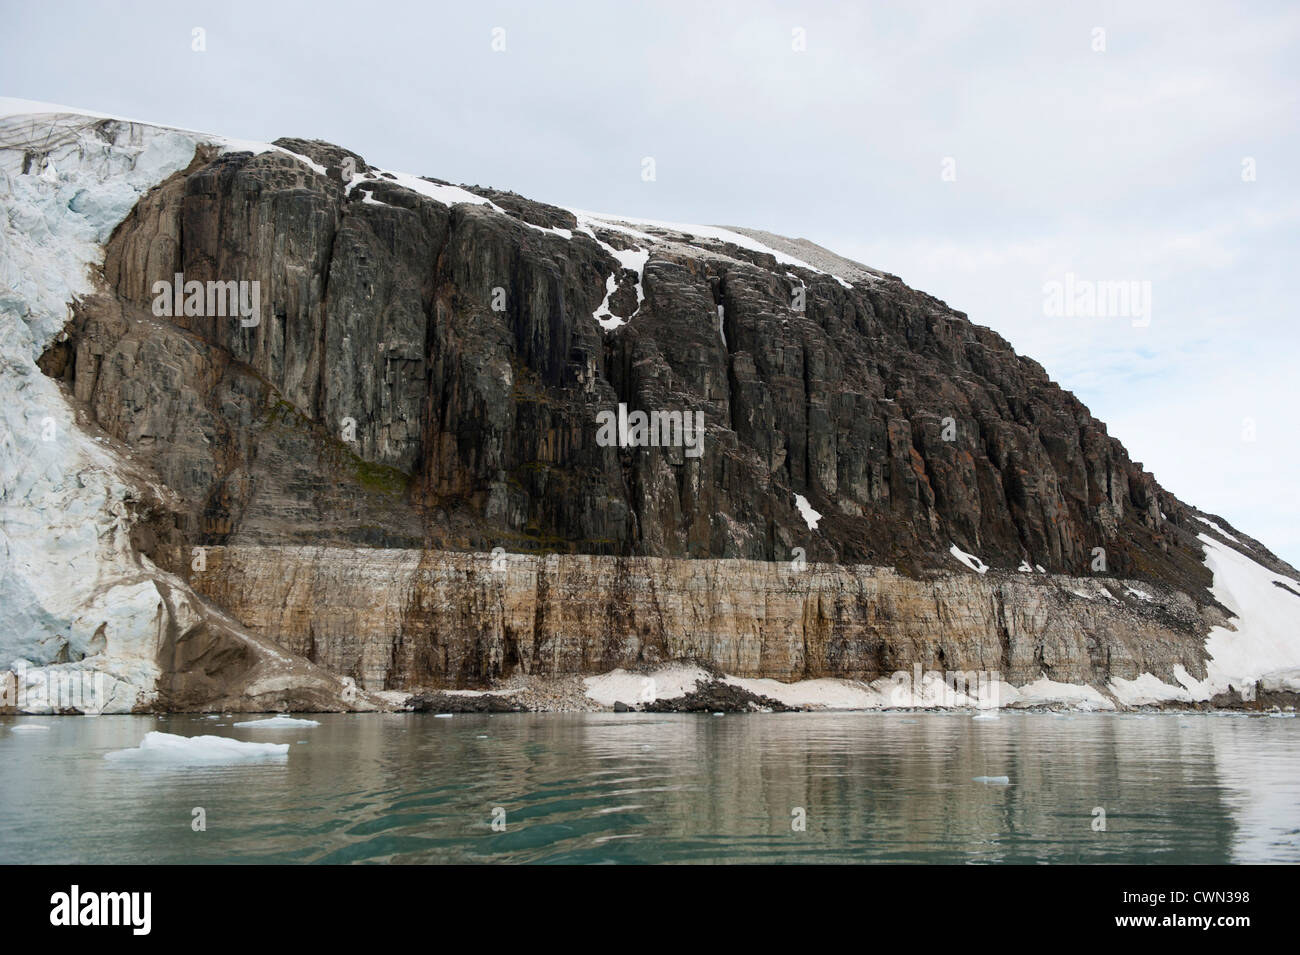 Doloritic intrusion. Limestone at the bottom and top divided by a dolorite sill, Alkefjellet, Spitsbergen, Svalbard, - Stock Image